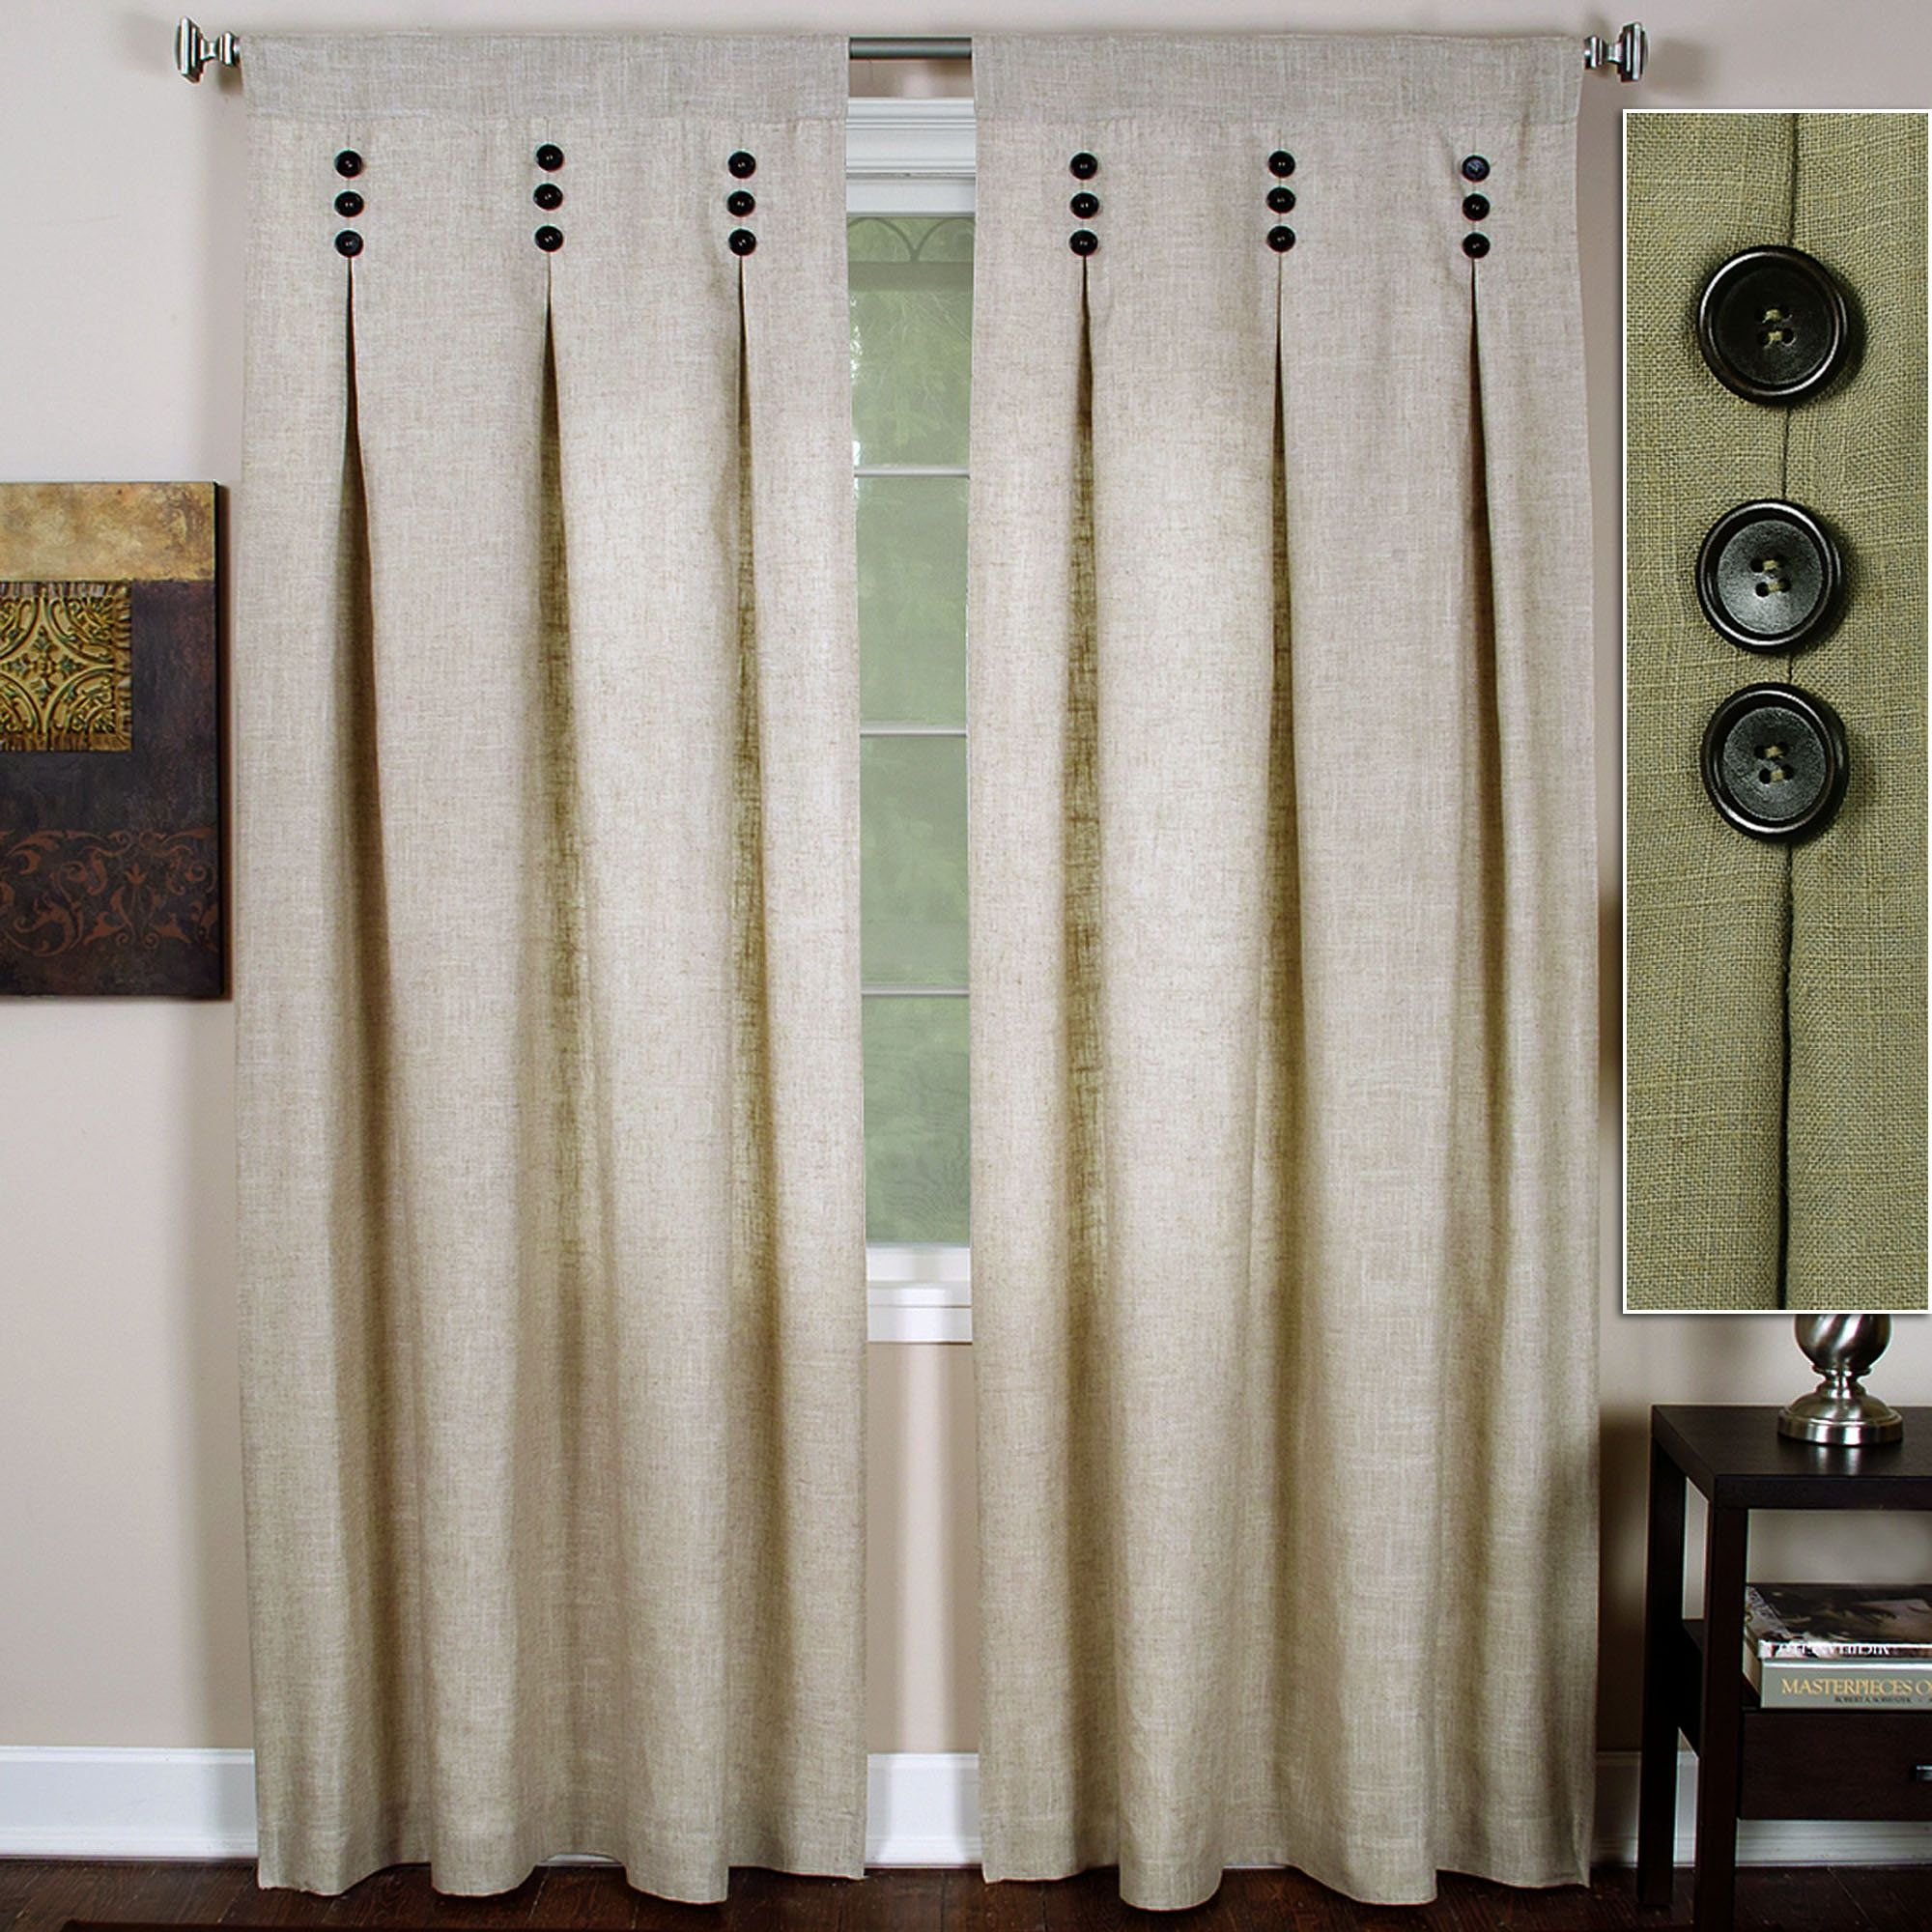 drapes modern curtains and drapes inverted pleat curtains design - Drapery Design Ideas